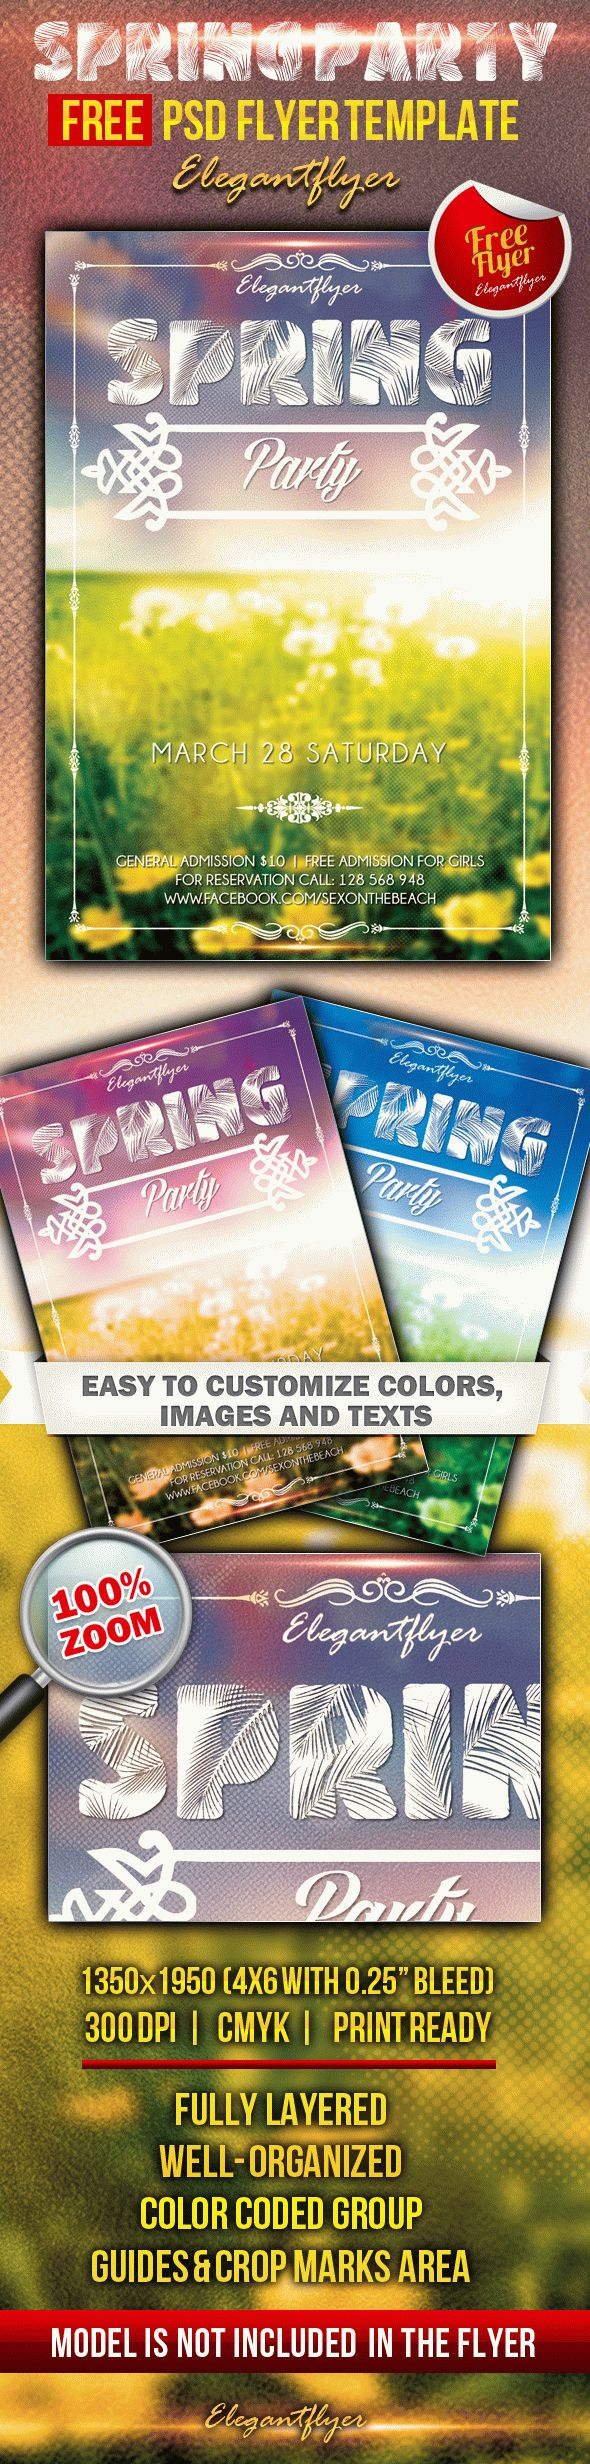 Spring party – Club and Party Free Flyer PSD Template